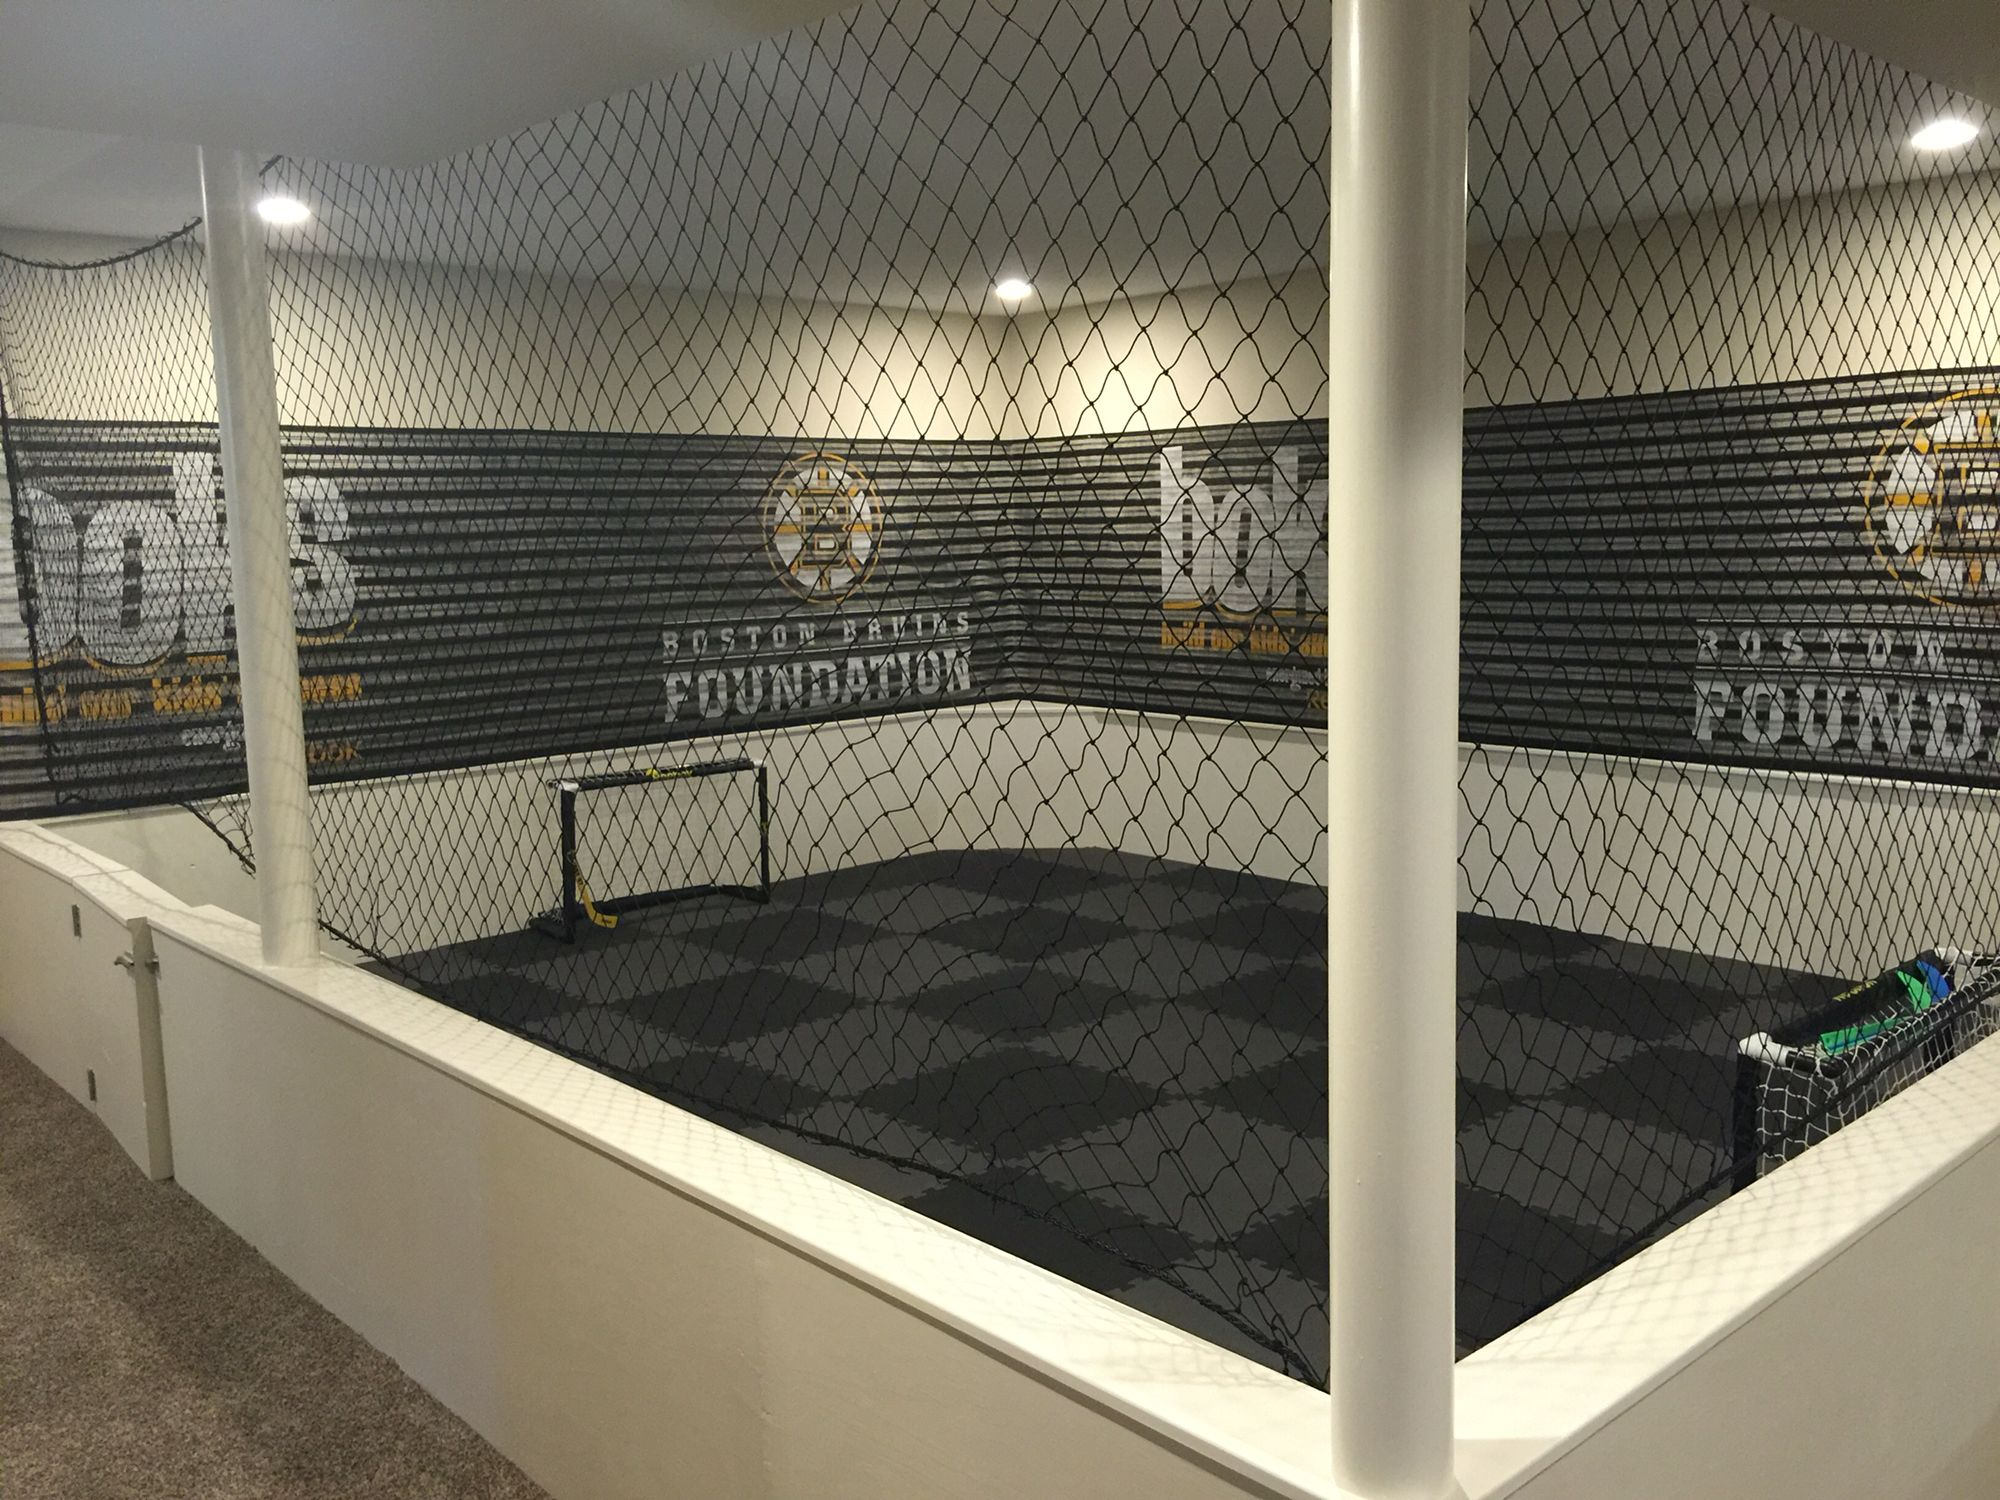 Man Cave Hockey Room : Knee hockey and futsal in our basement completed diy projects